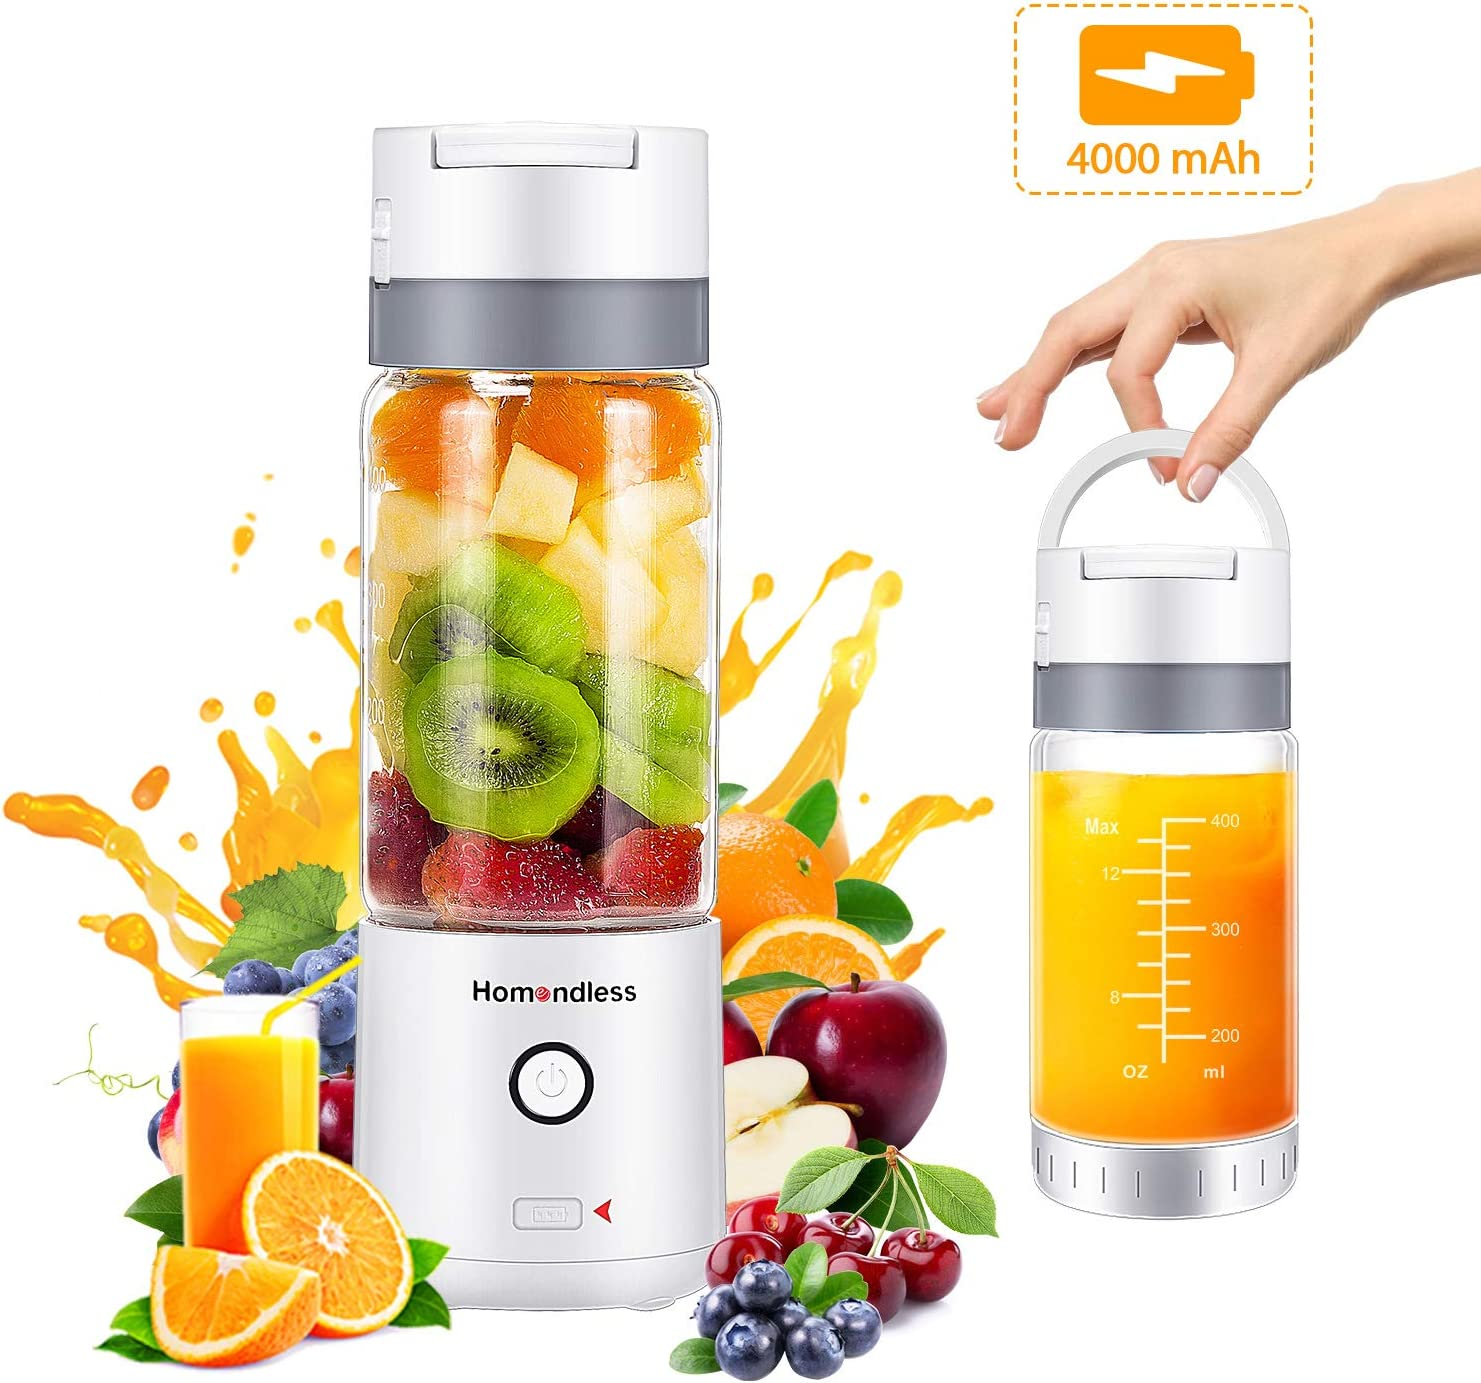 Portable Blender, Personal Smoothie Blender with Vacuum Cap, 4000 mAh Rechargeable Batteries 7.4V Strong Power, 14oz Glass Cup, 4 Blades Juicer Mixer for Office Gym Outdoors Travel FDA Certificated